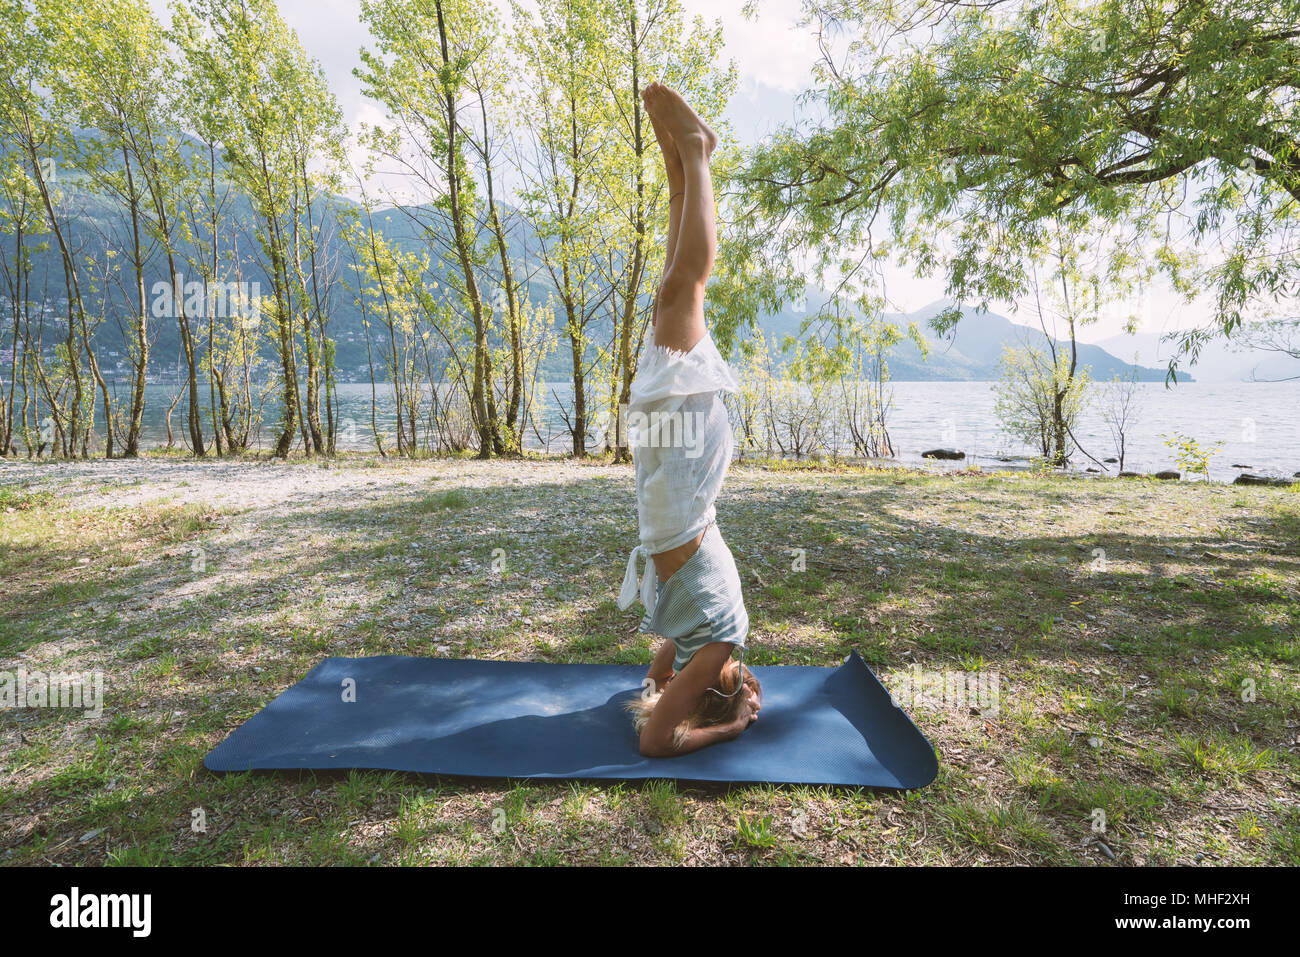 Young woman exercising yoga by the lake and mountains, shot in Ticino Canton, Switzerland, Europe. People relaxation wellbeing concept - Stock Image